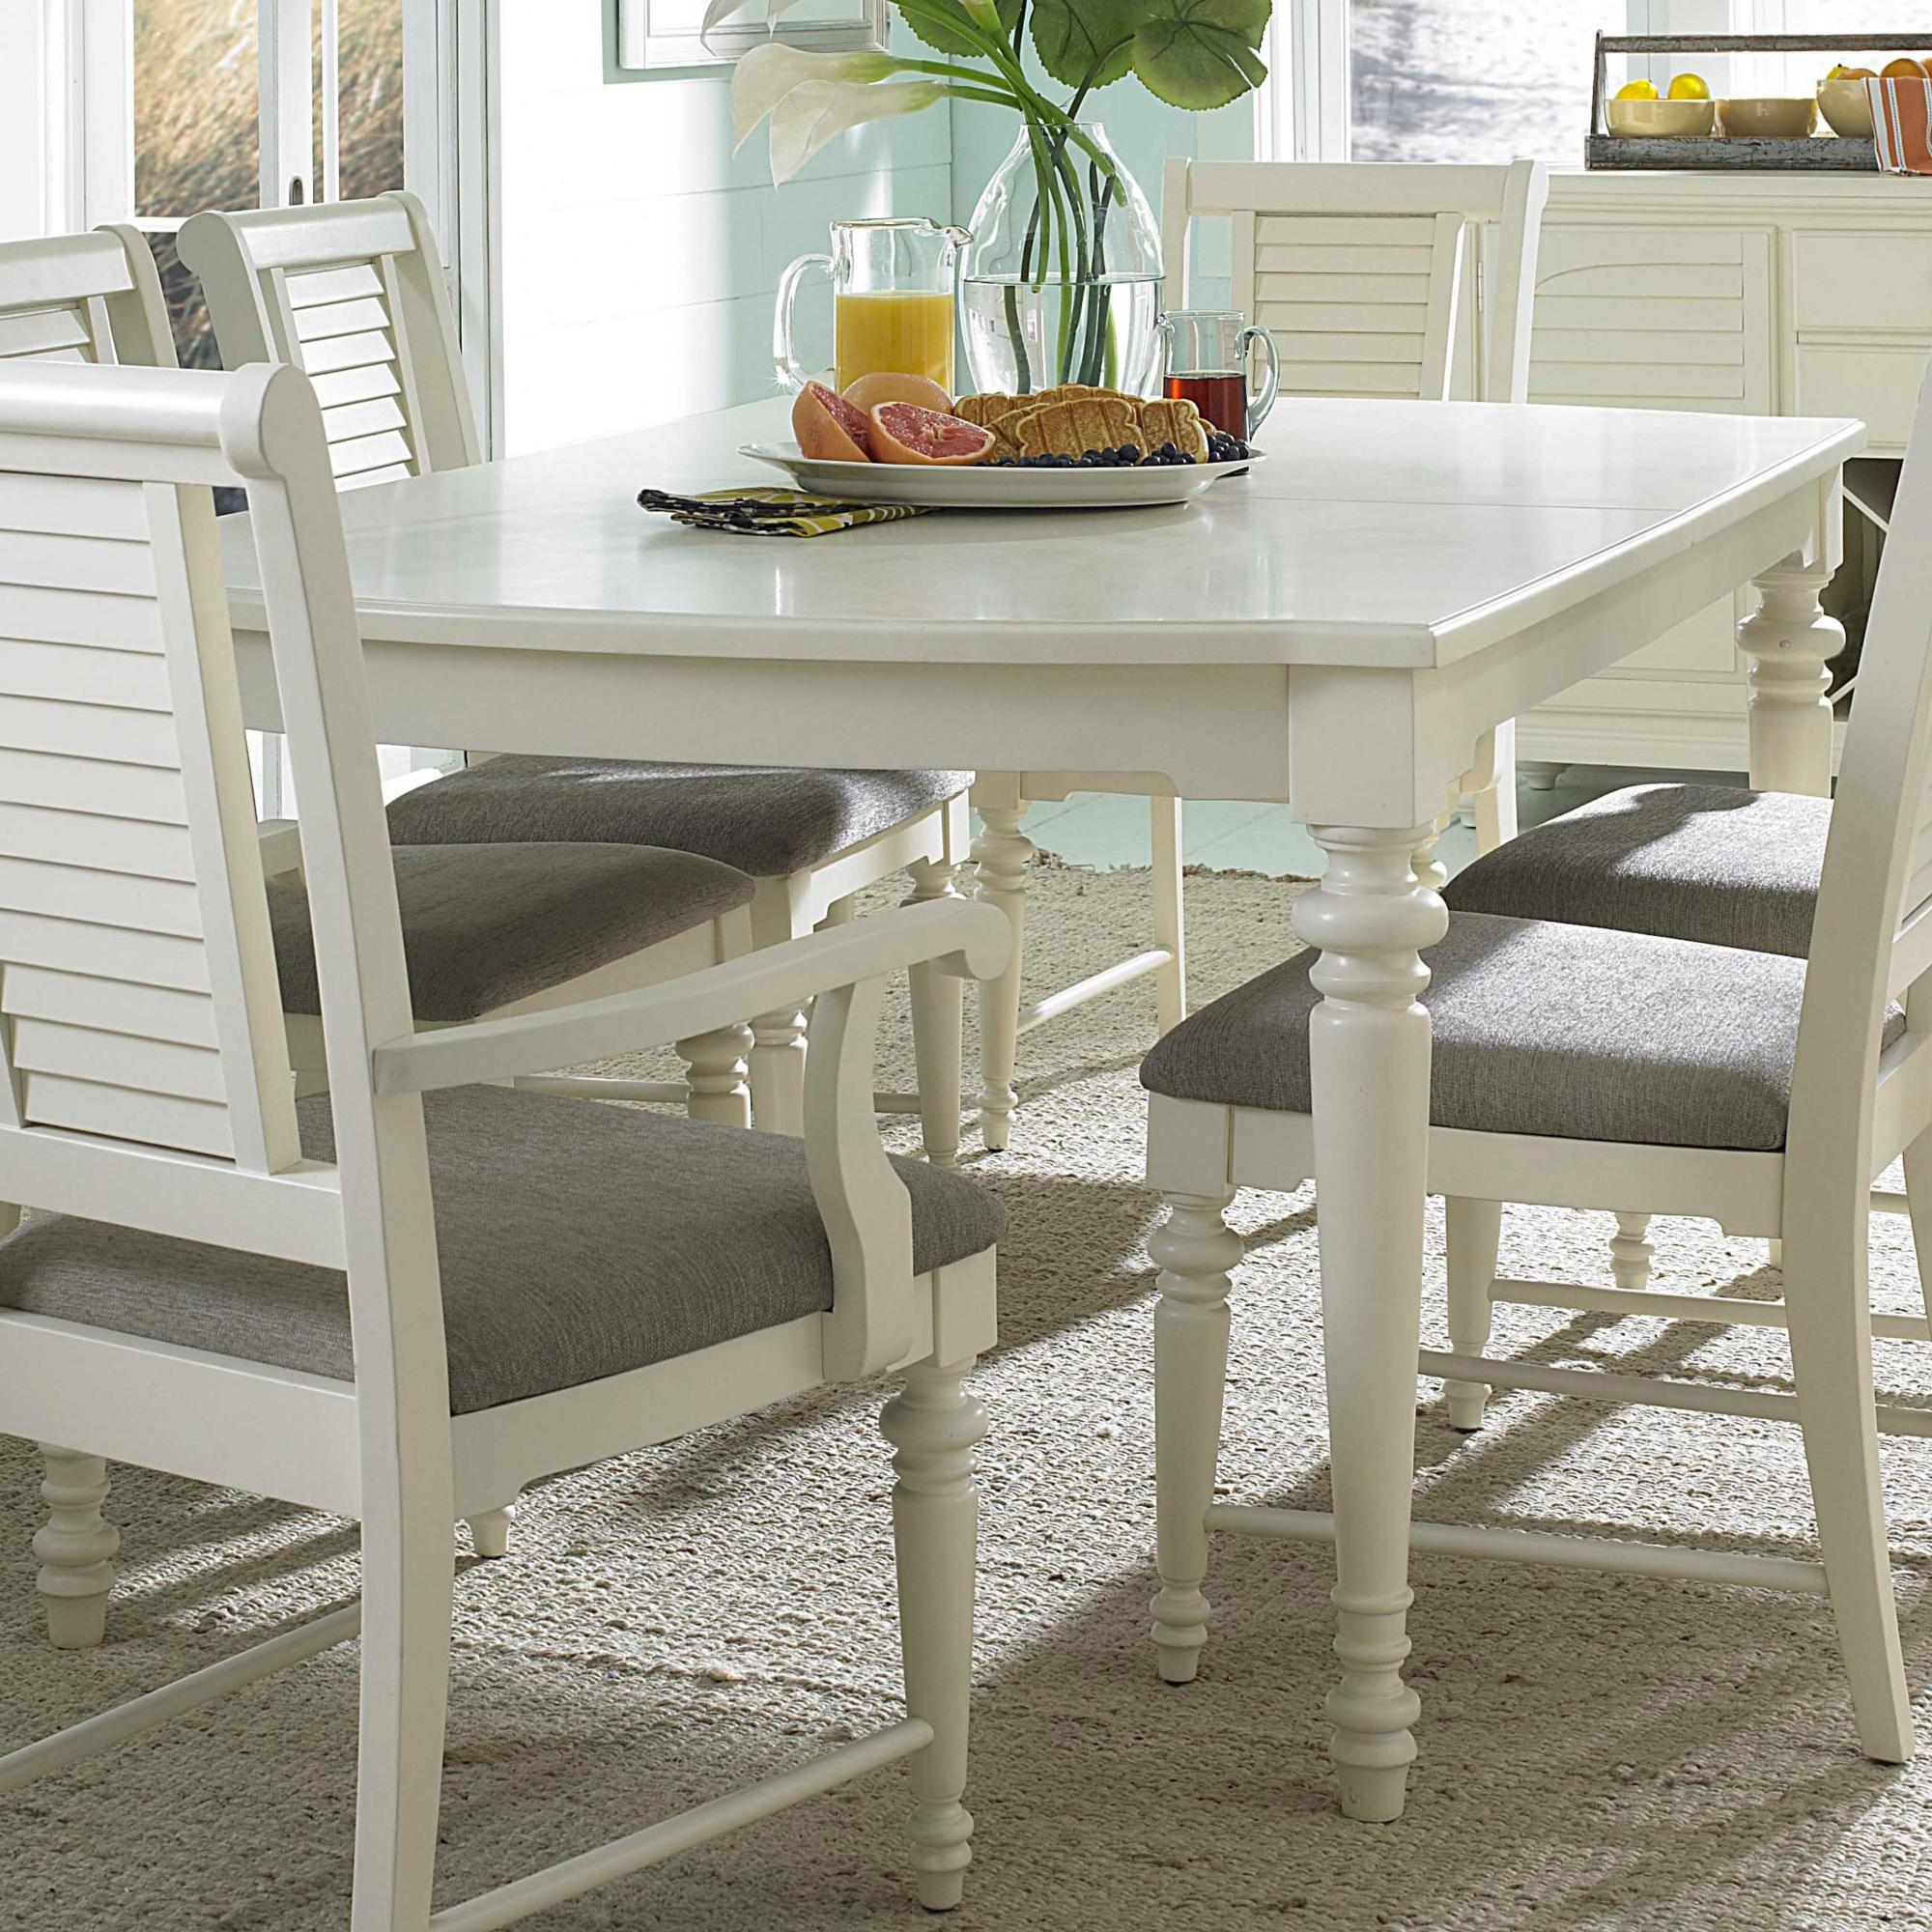 Broyhill furniture seabrooke 4471 532 turned leg dining for White turned leg dining table